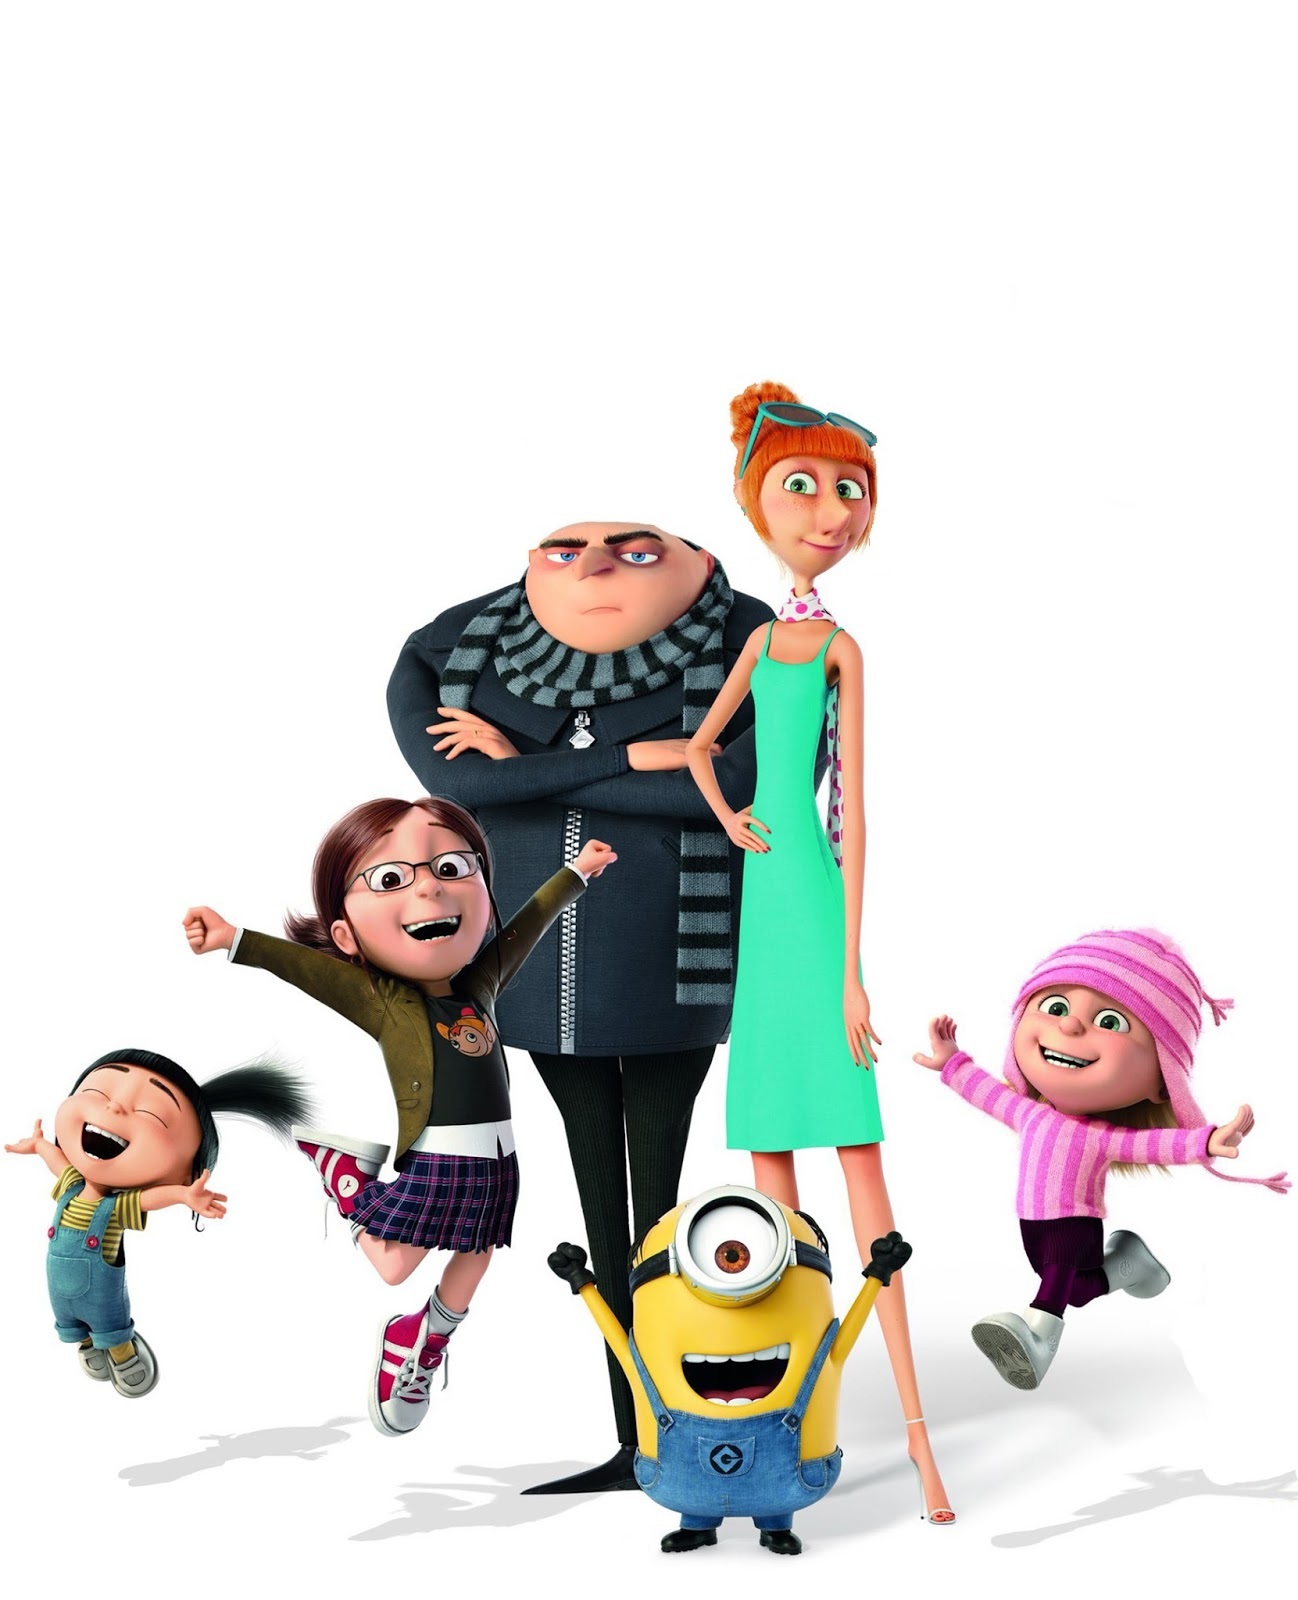 Dispicable Me Pictures - impremedia.net